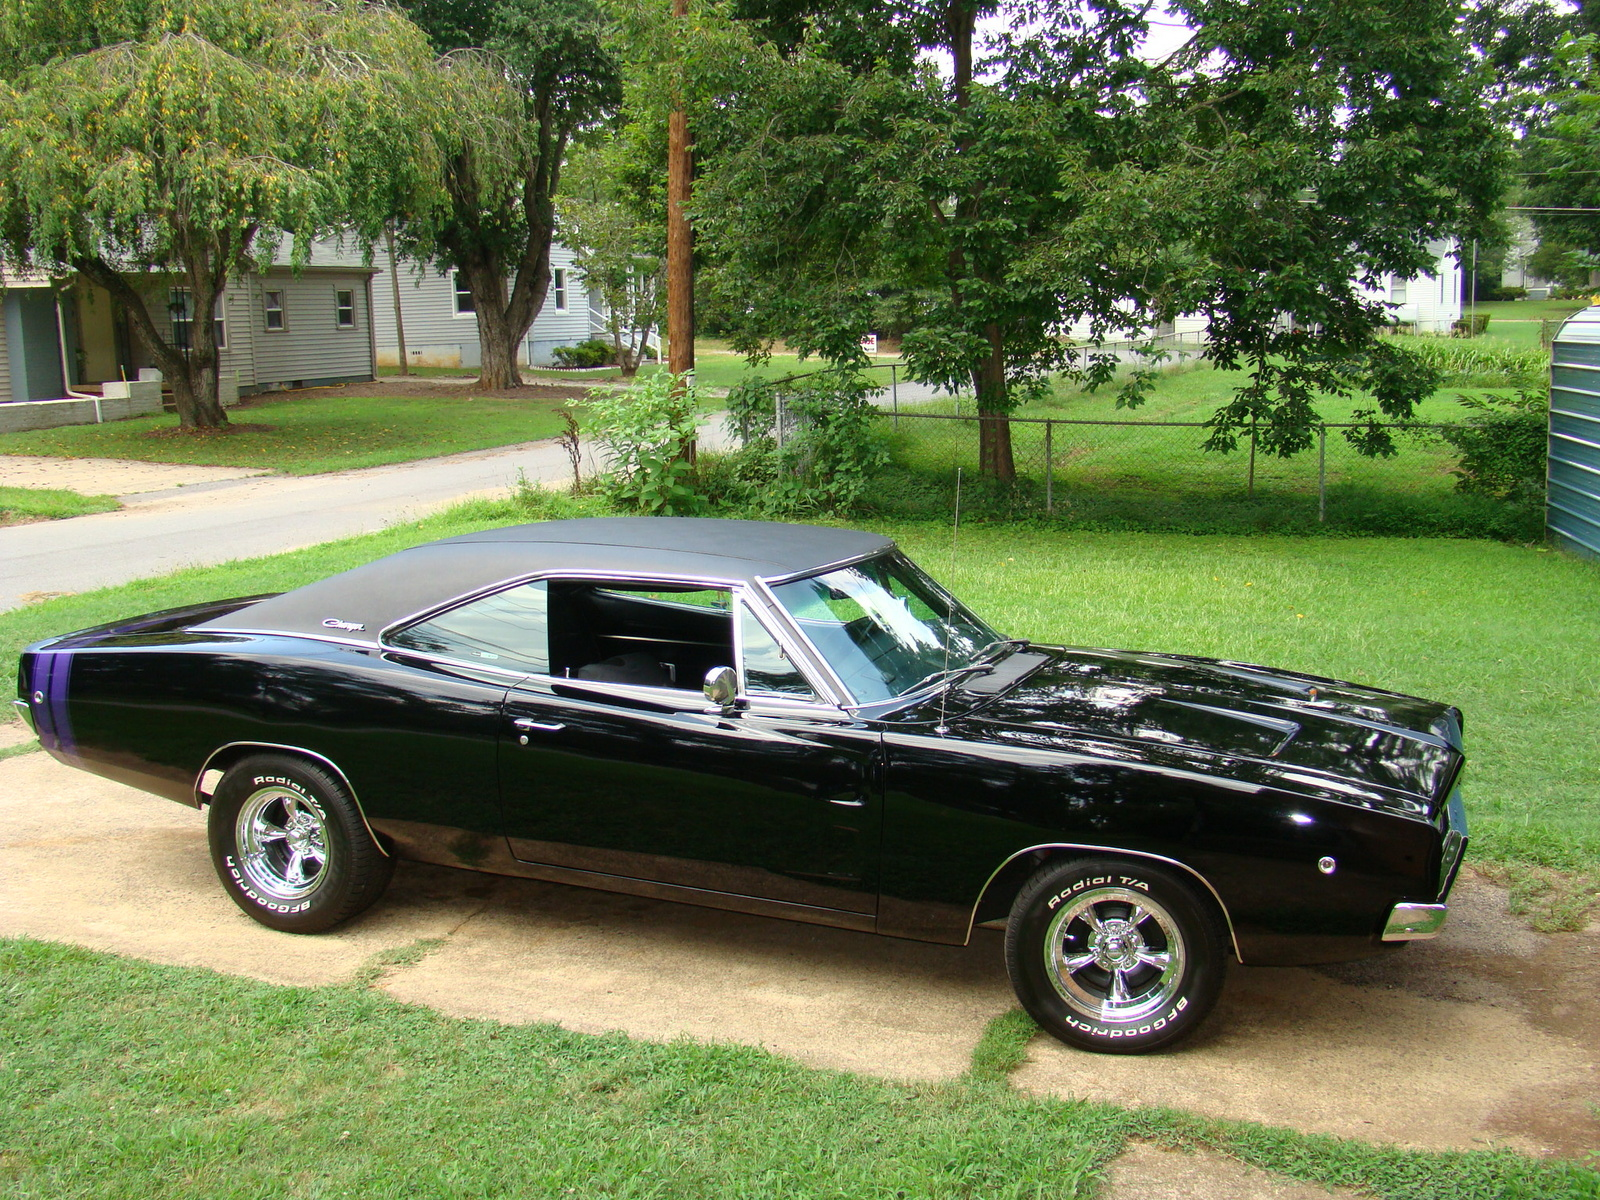 1968 dodge charger and 1969 dodge daytona a real treat for fans of muscle cars top hot cars. Black Bedroom Furniture Sets. Home Design Ideas